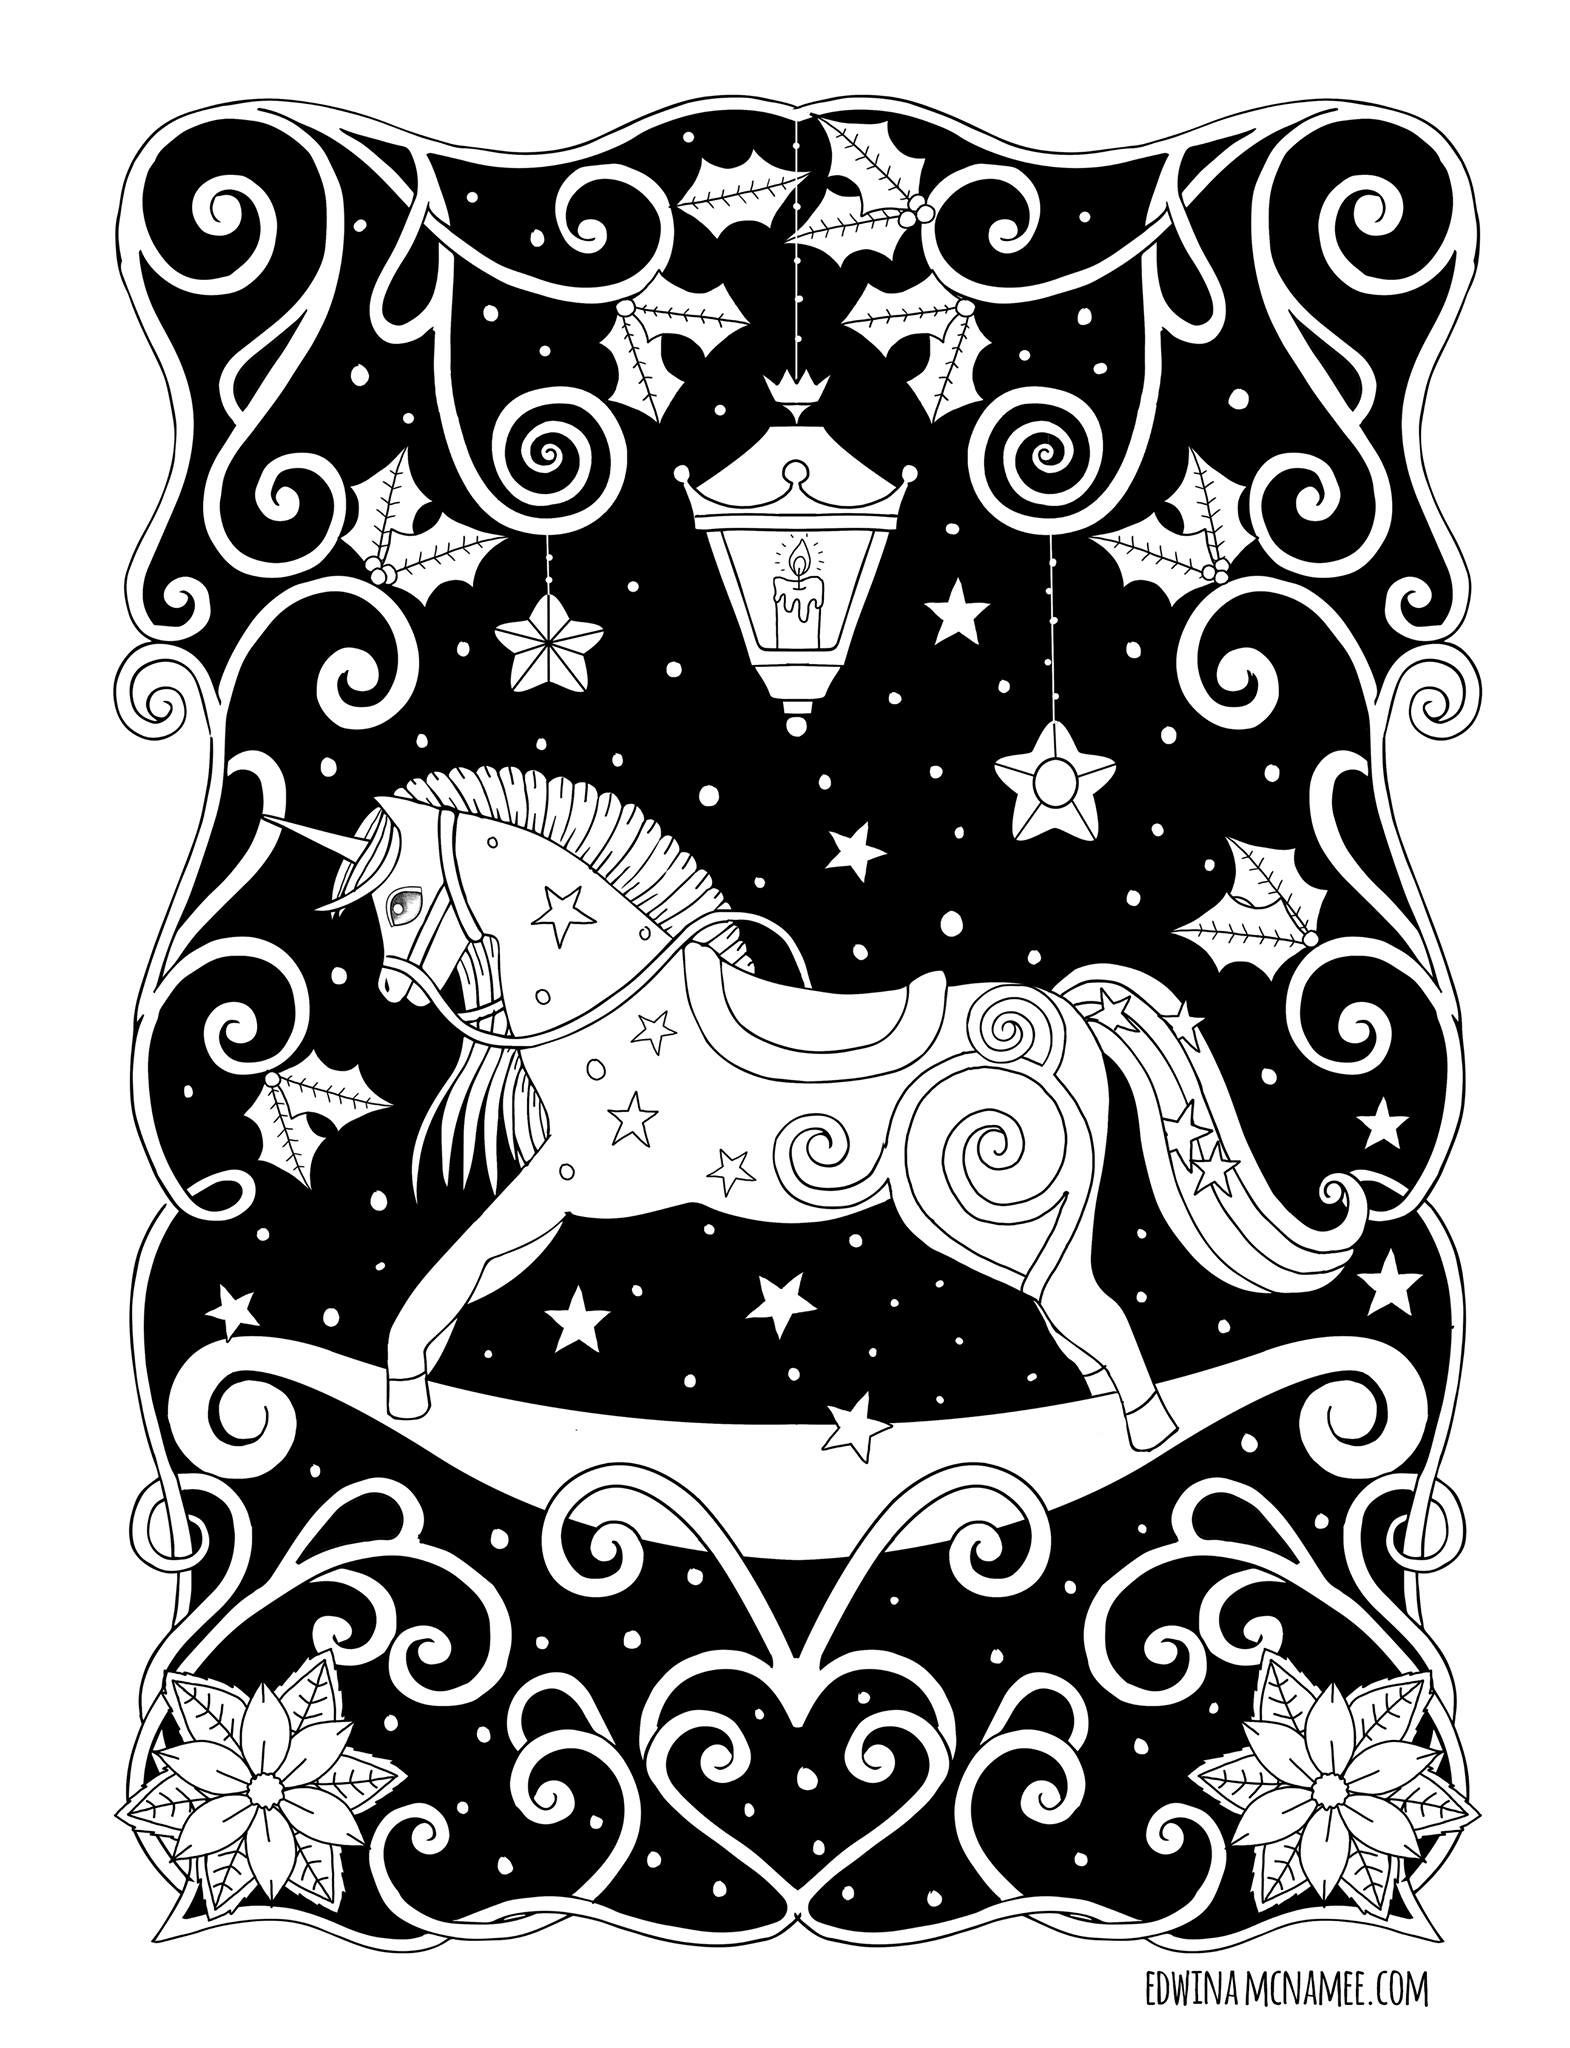 pin by anne wilkinson on creative pinterest coloring books